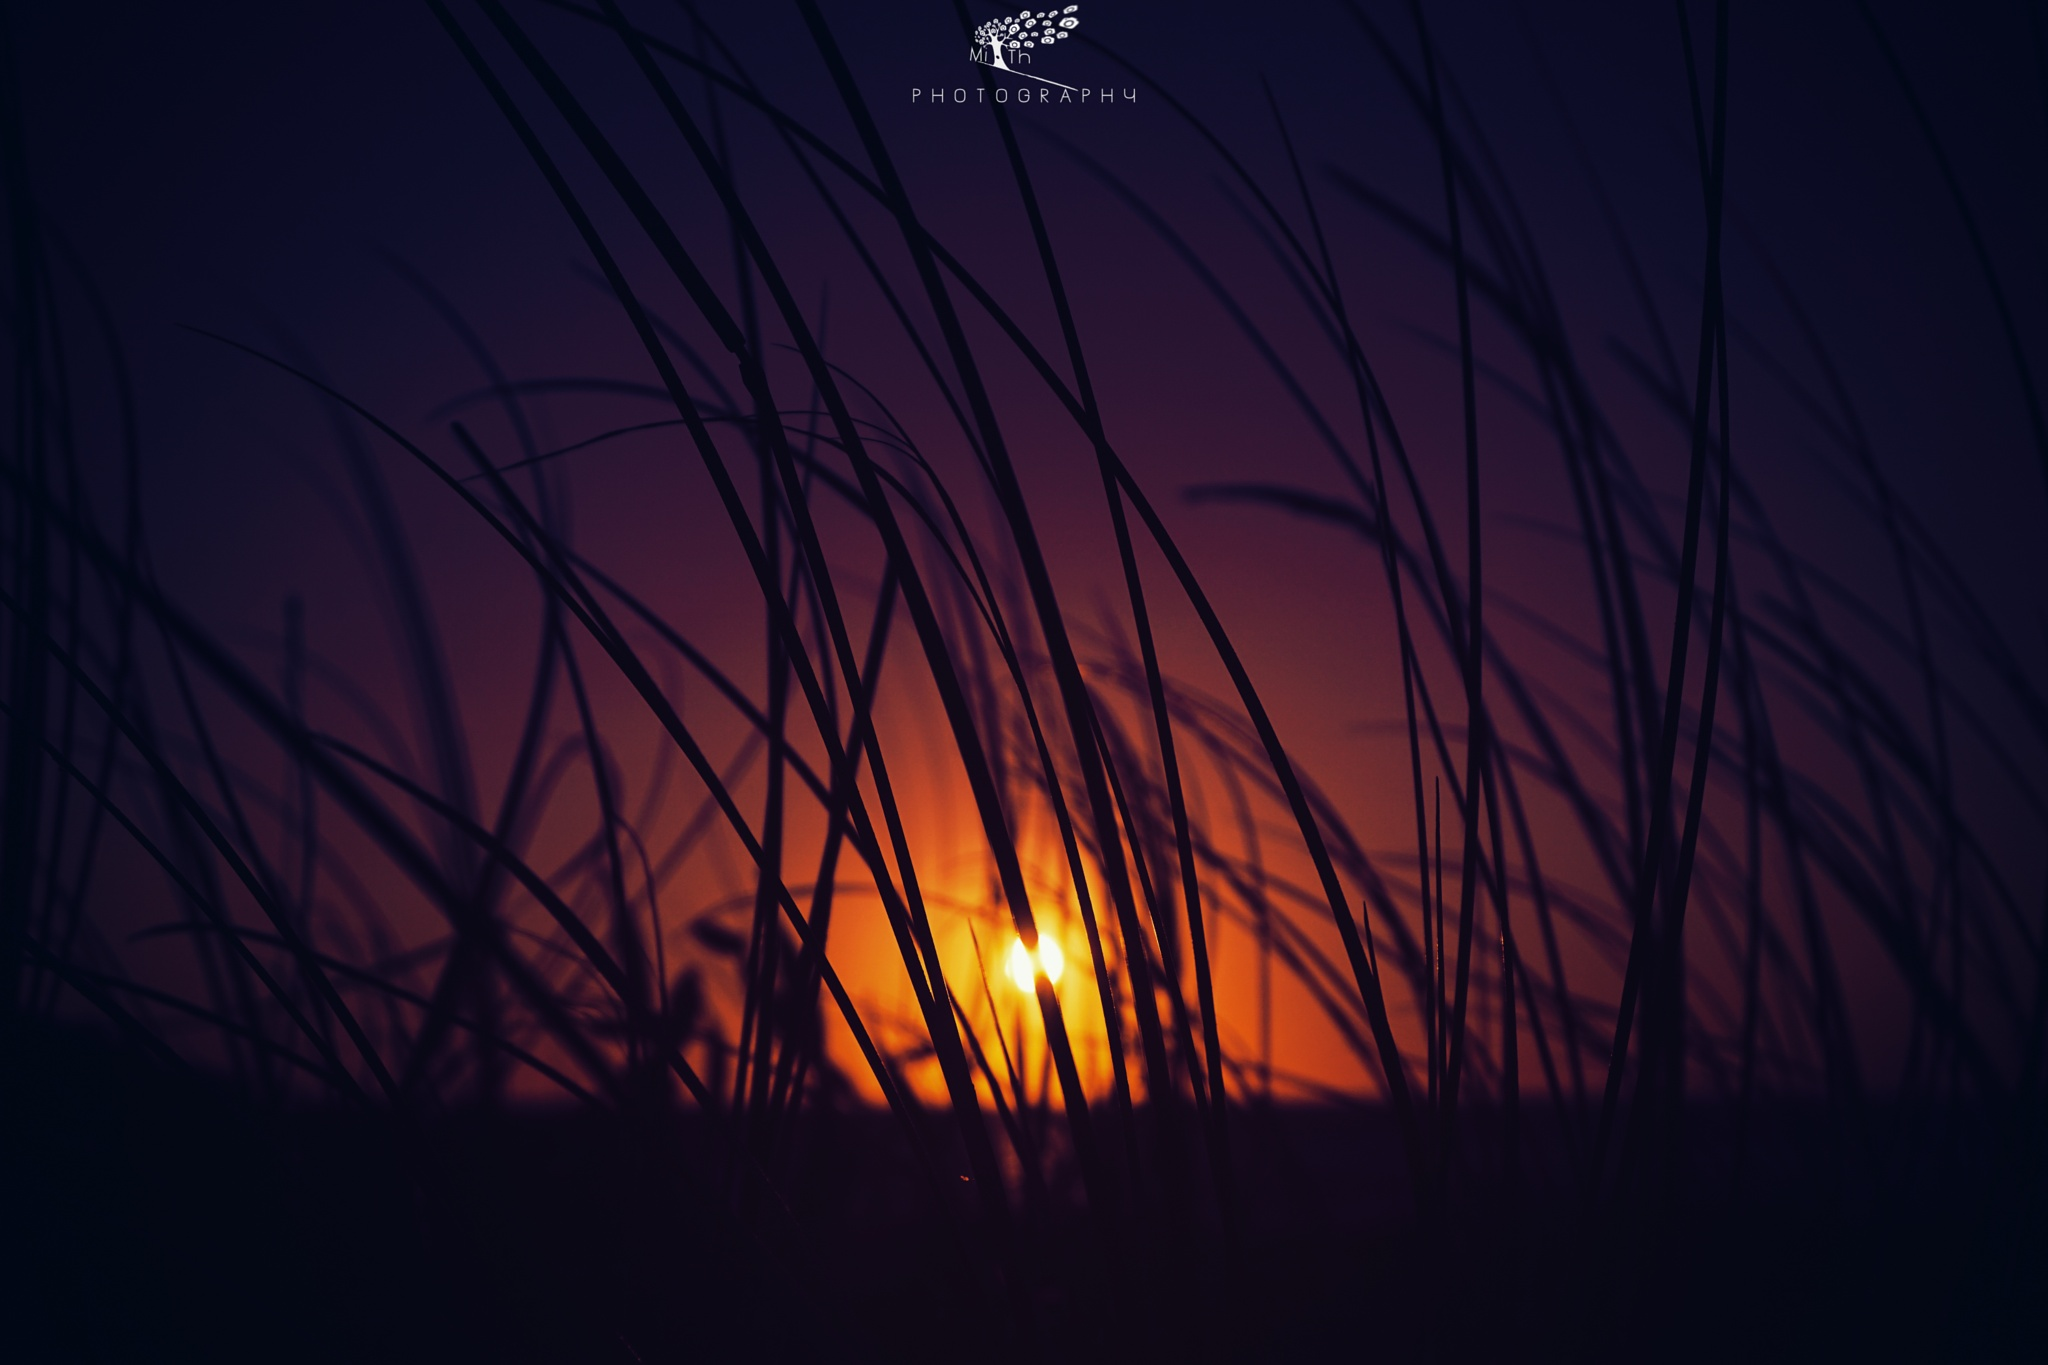 Twilight Sunset by mithphotography